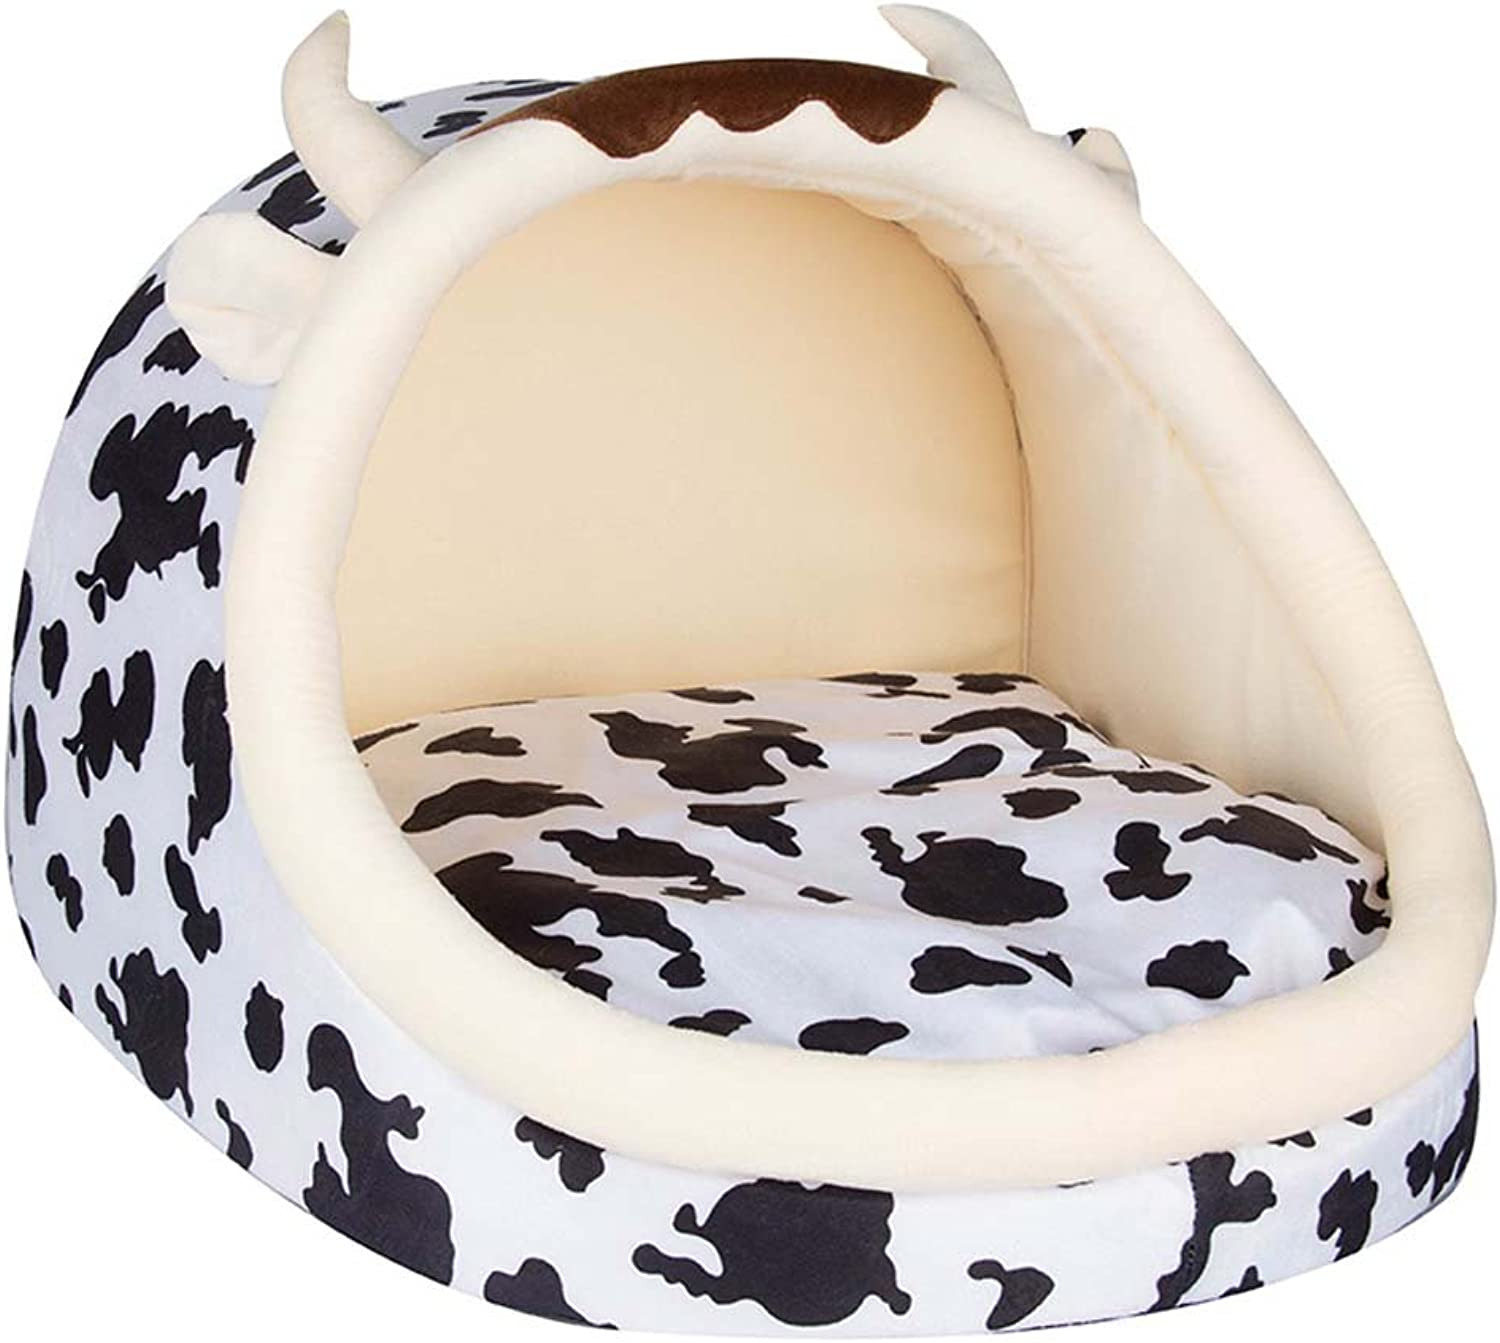 Pet nest Kitten Puppy Pet Bed Cute Leopard Shape Washable Suitable for kittens and other small pets